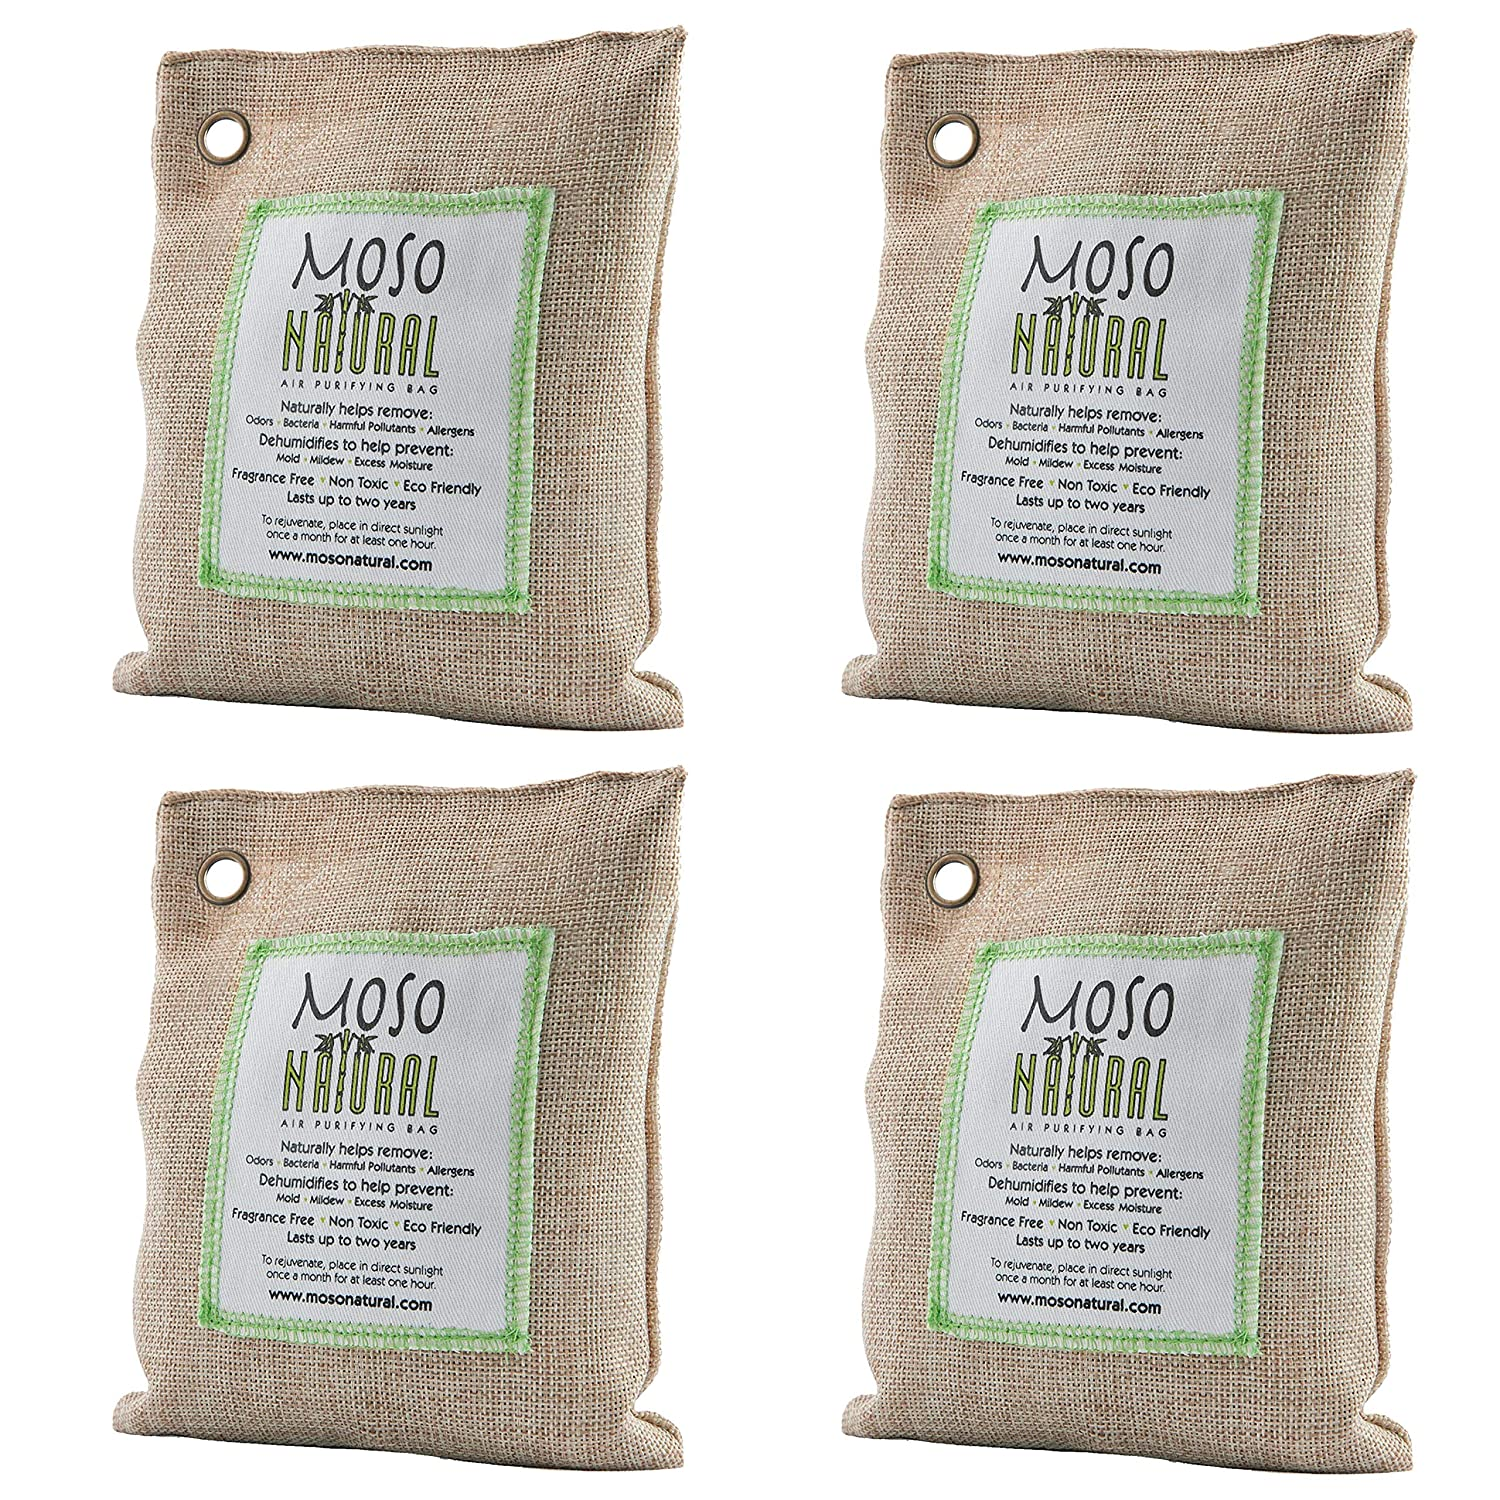 Moso Natural Air Purifying Bag. Odor Eliminator for Cars, Closets, Bathrooms and Pet Areas. Natural Color, 200-G, 4 Pack A.C. Kerman - Pet Products MB2578-4